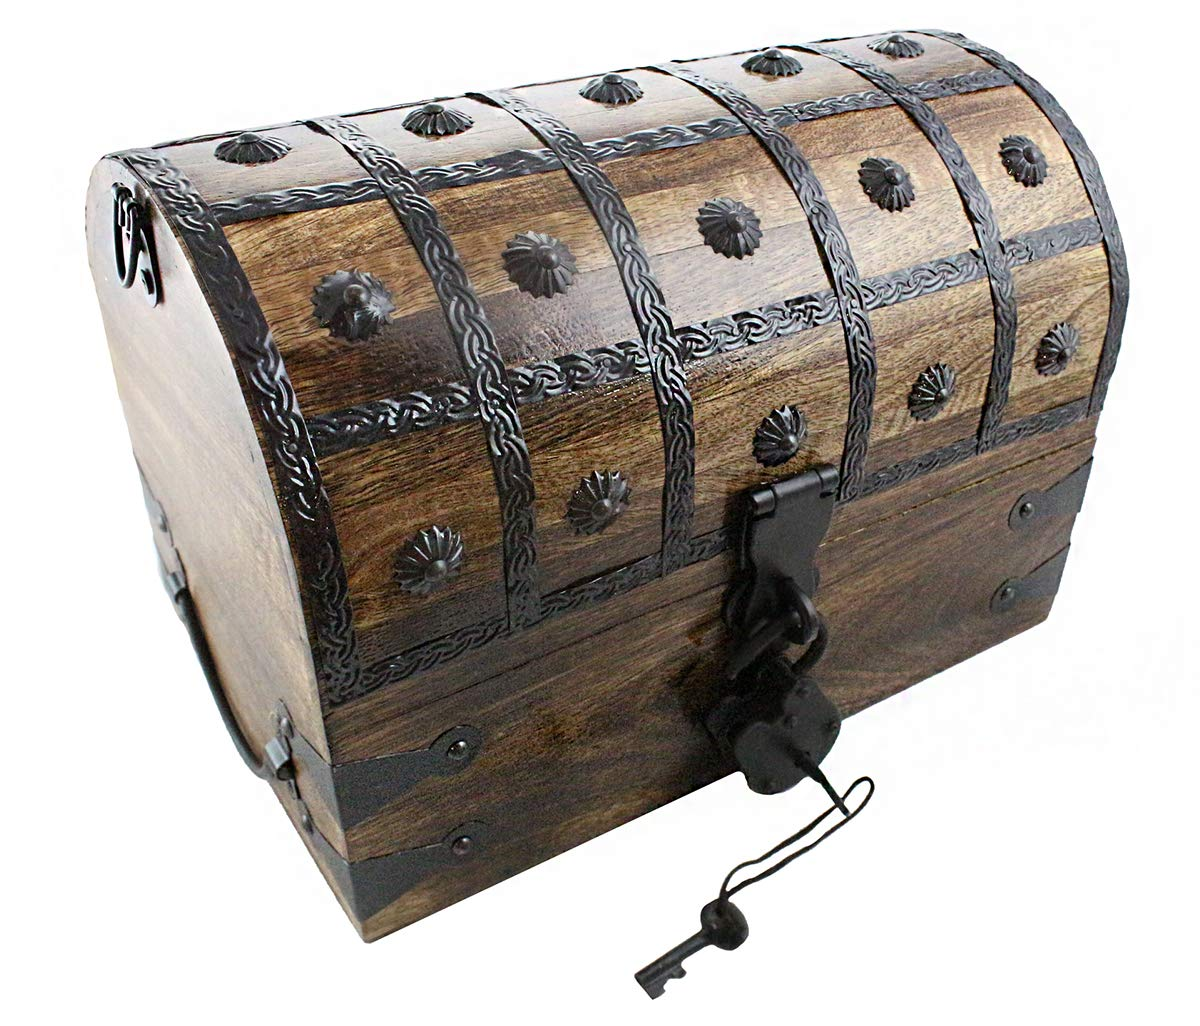 Pirate Treasure Chest With Iron Lock Skeleton Key Large 14 x 9 x 8 Decorative Box by Well Pack Box by Well Pack Box